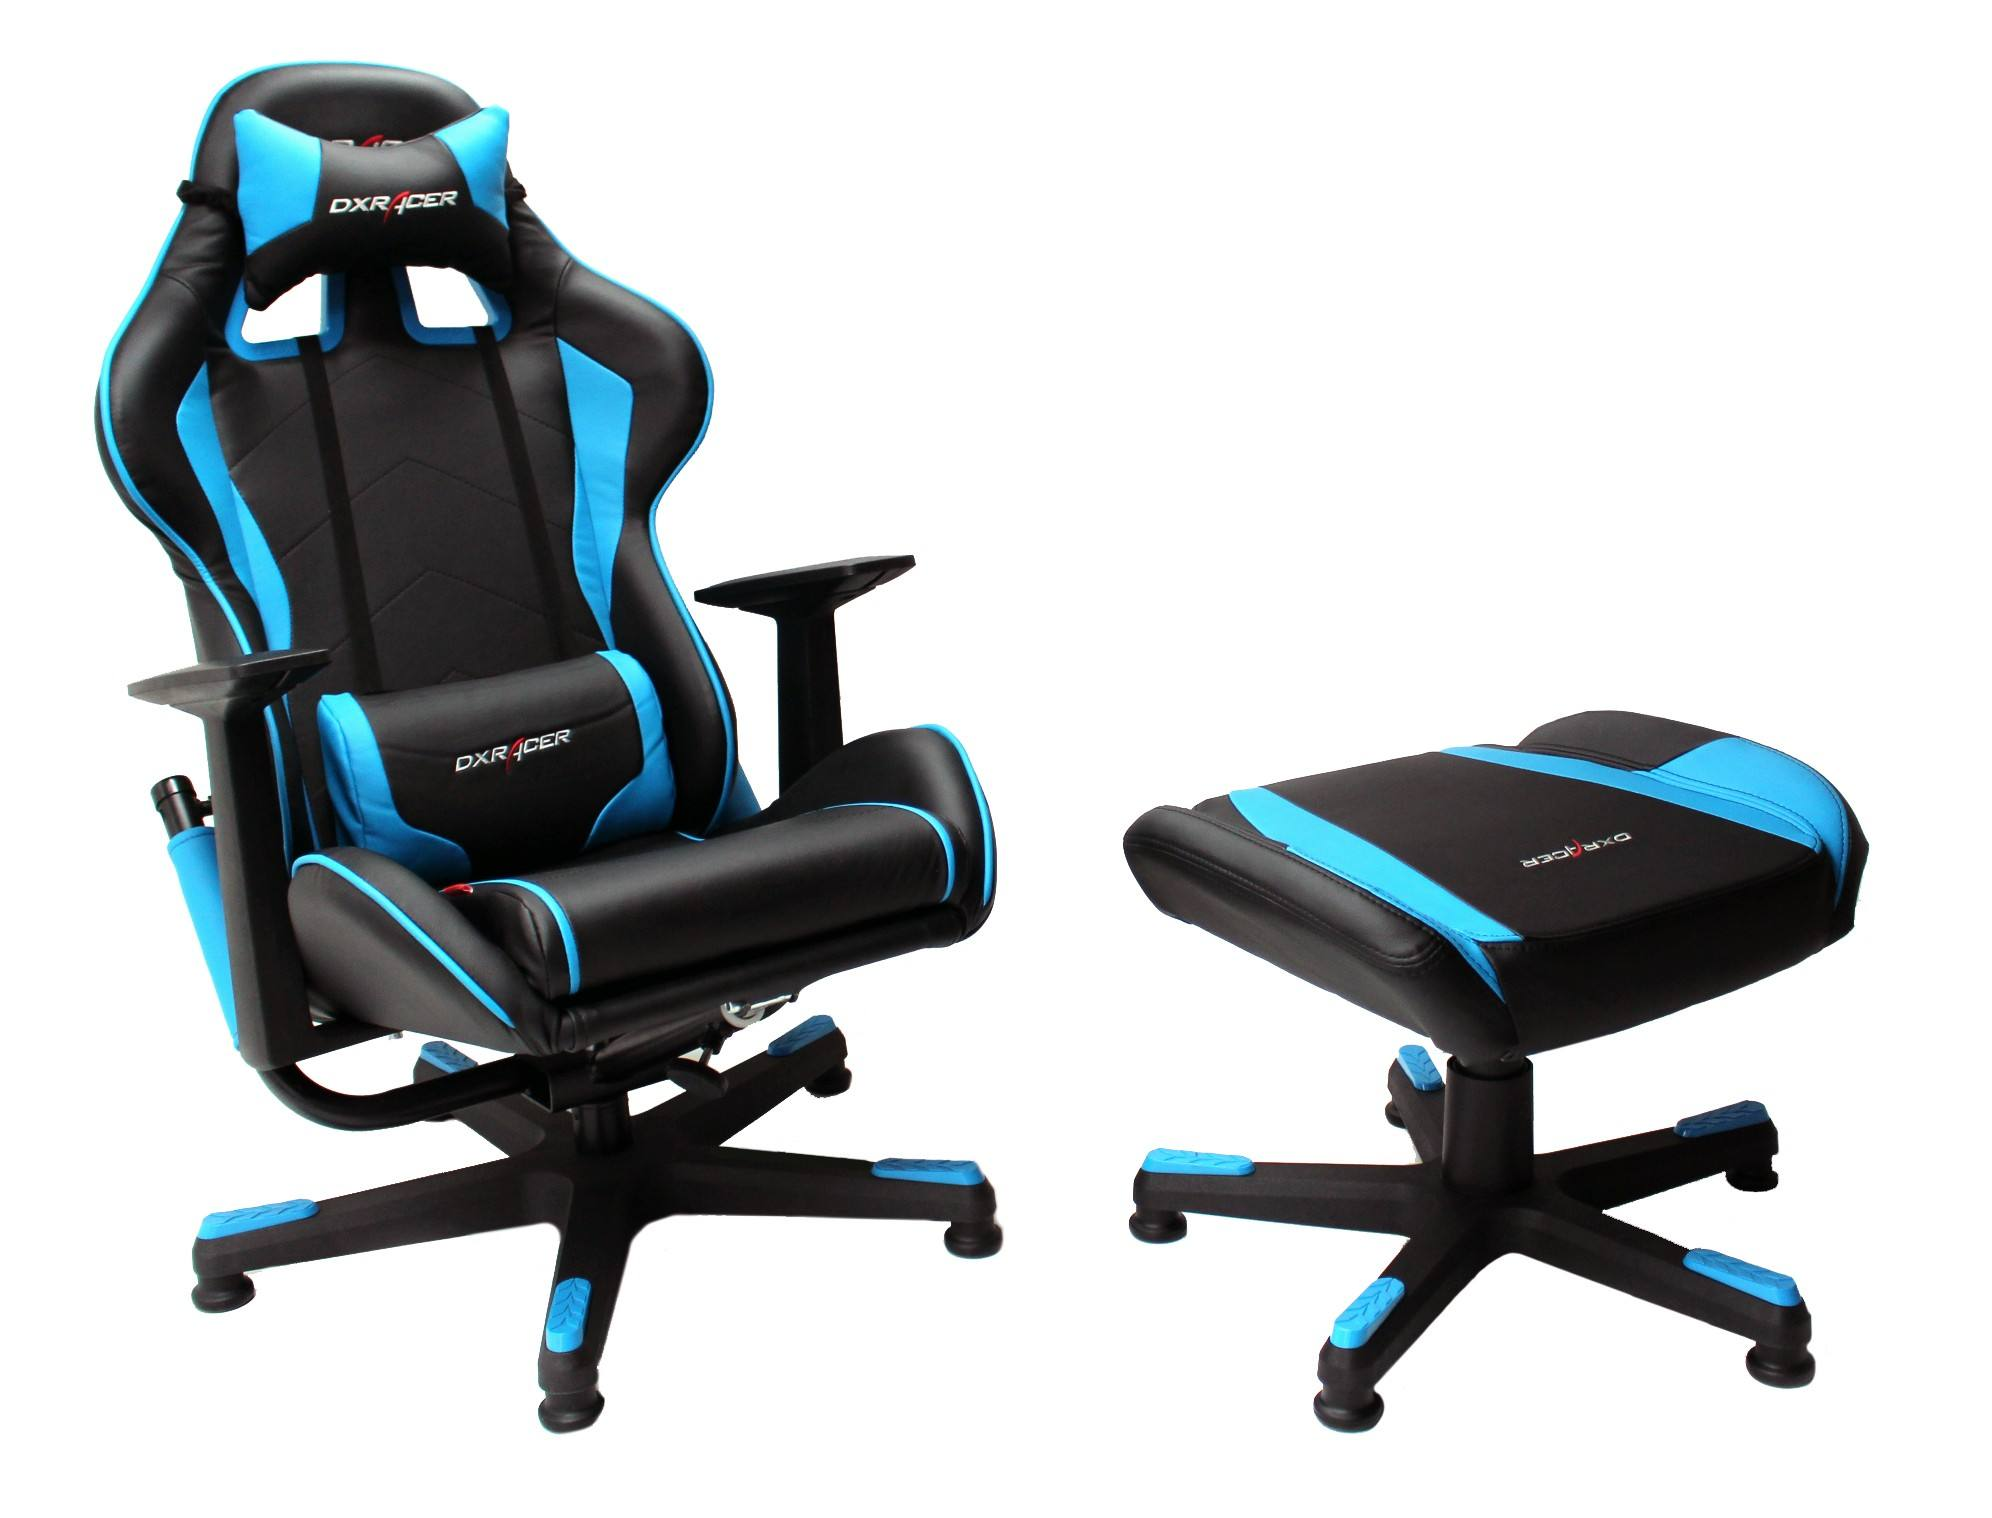 Image Result For Gaming Chaira